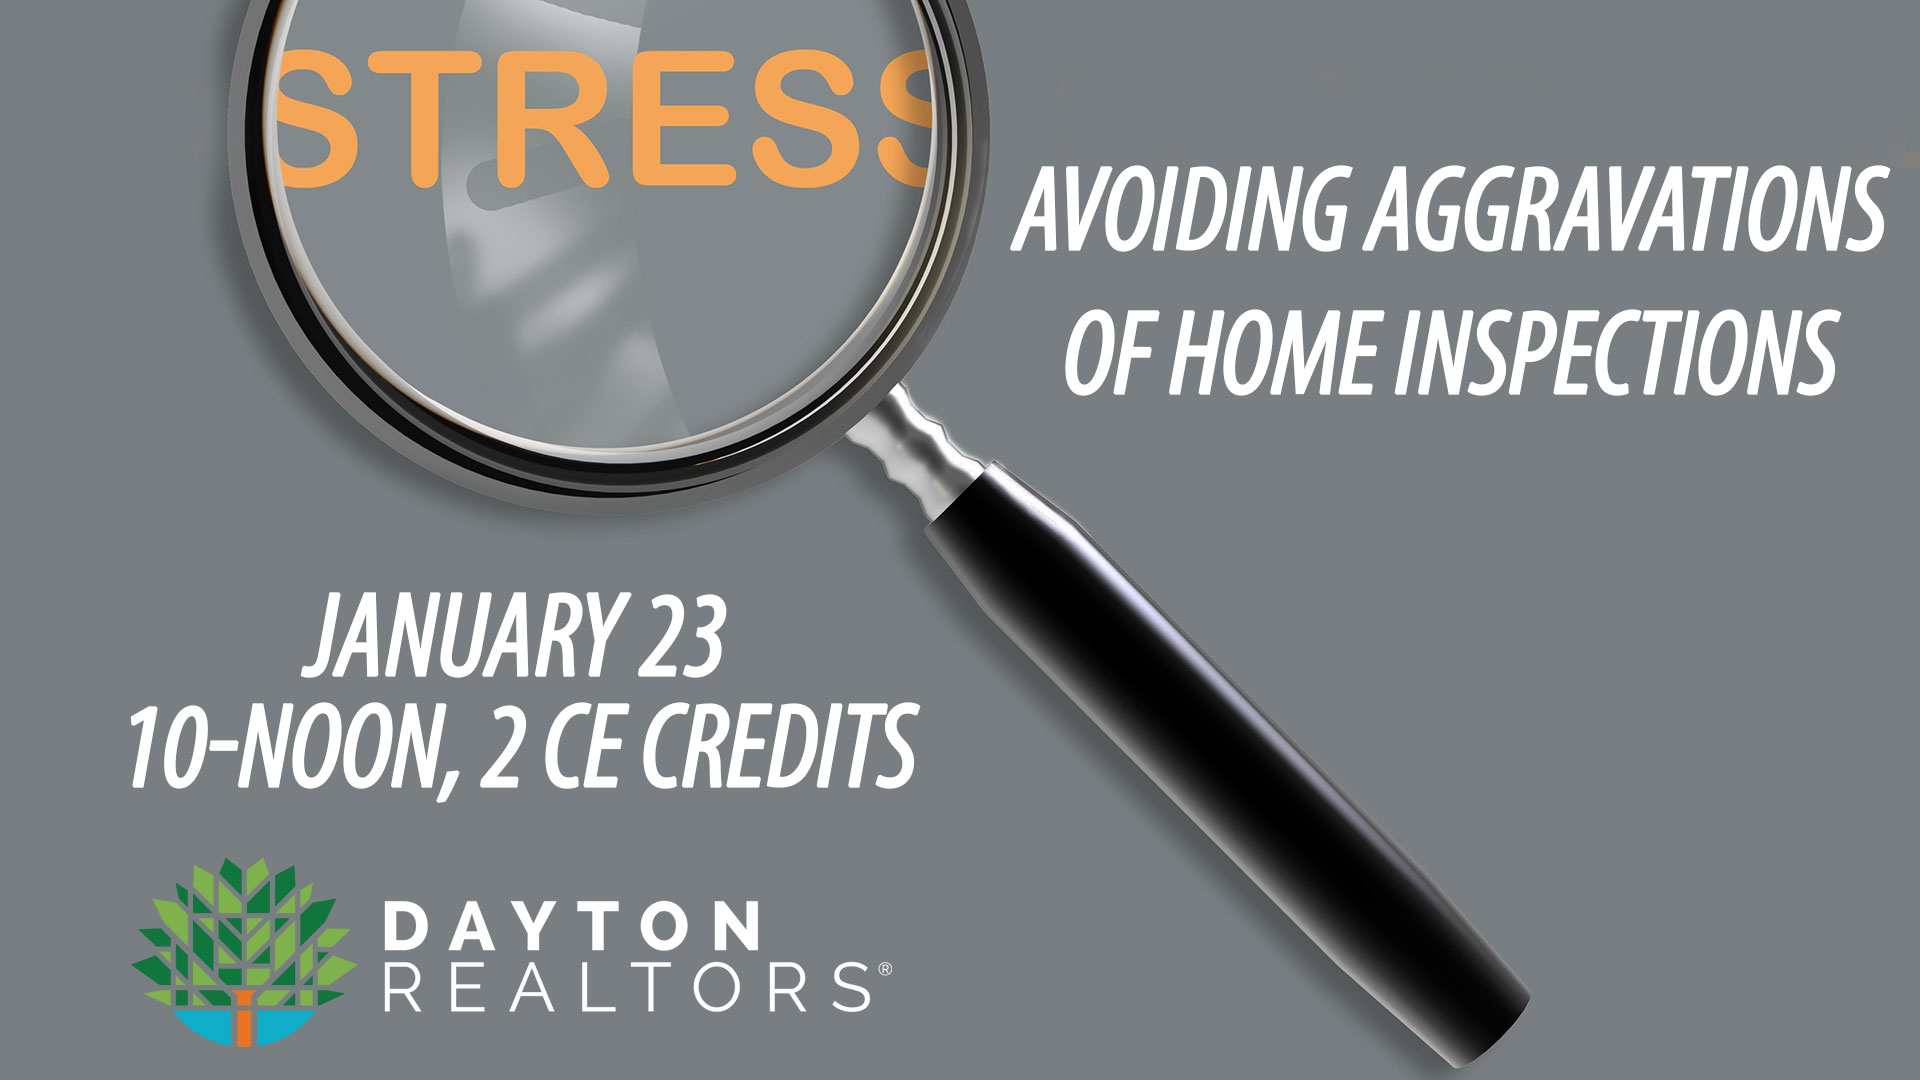 Avoiding Aggravations of Home Inspections, Jan. 23